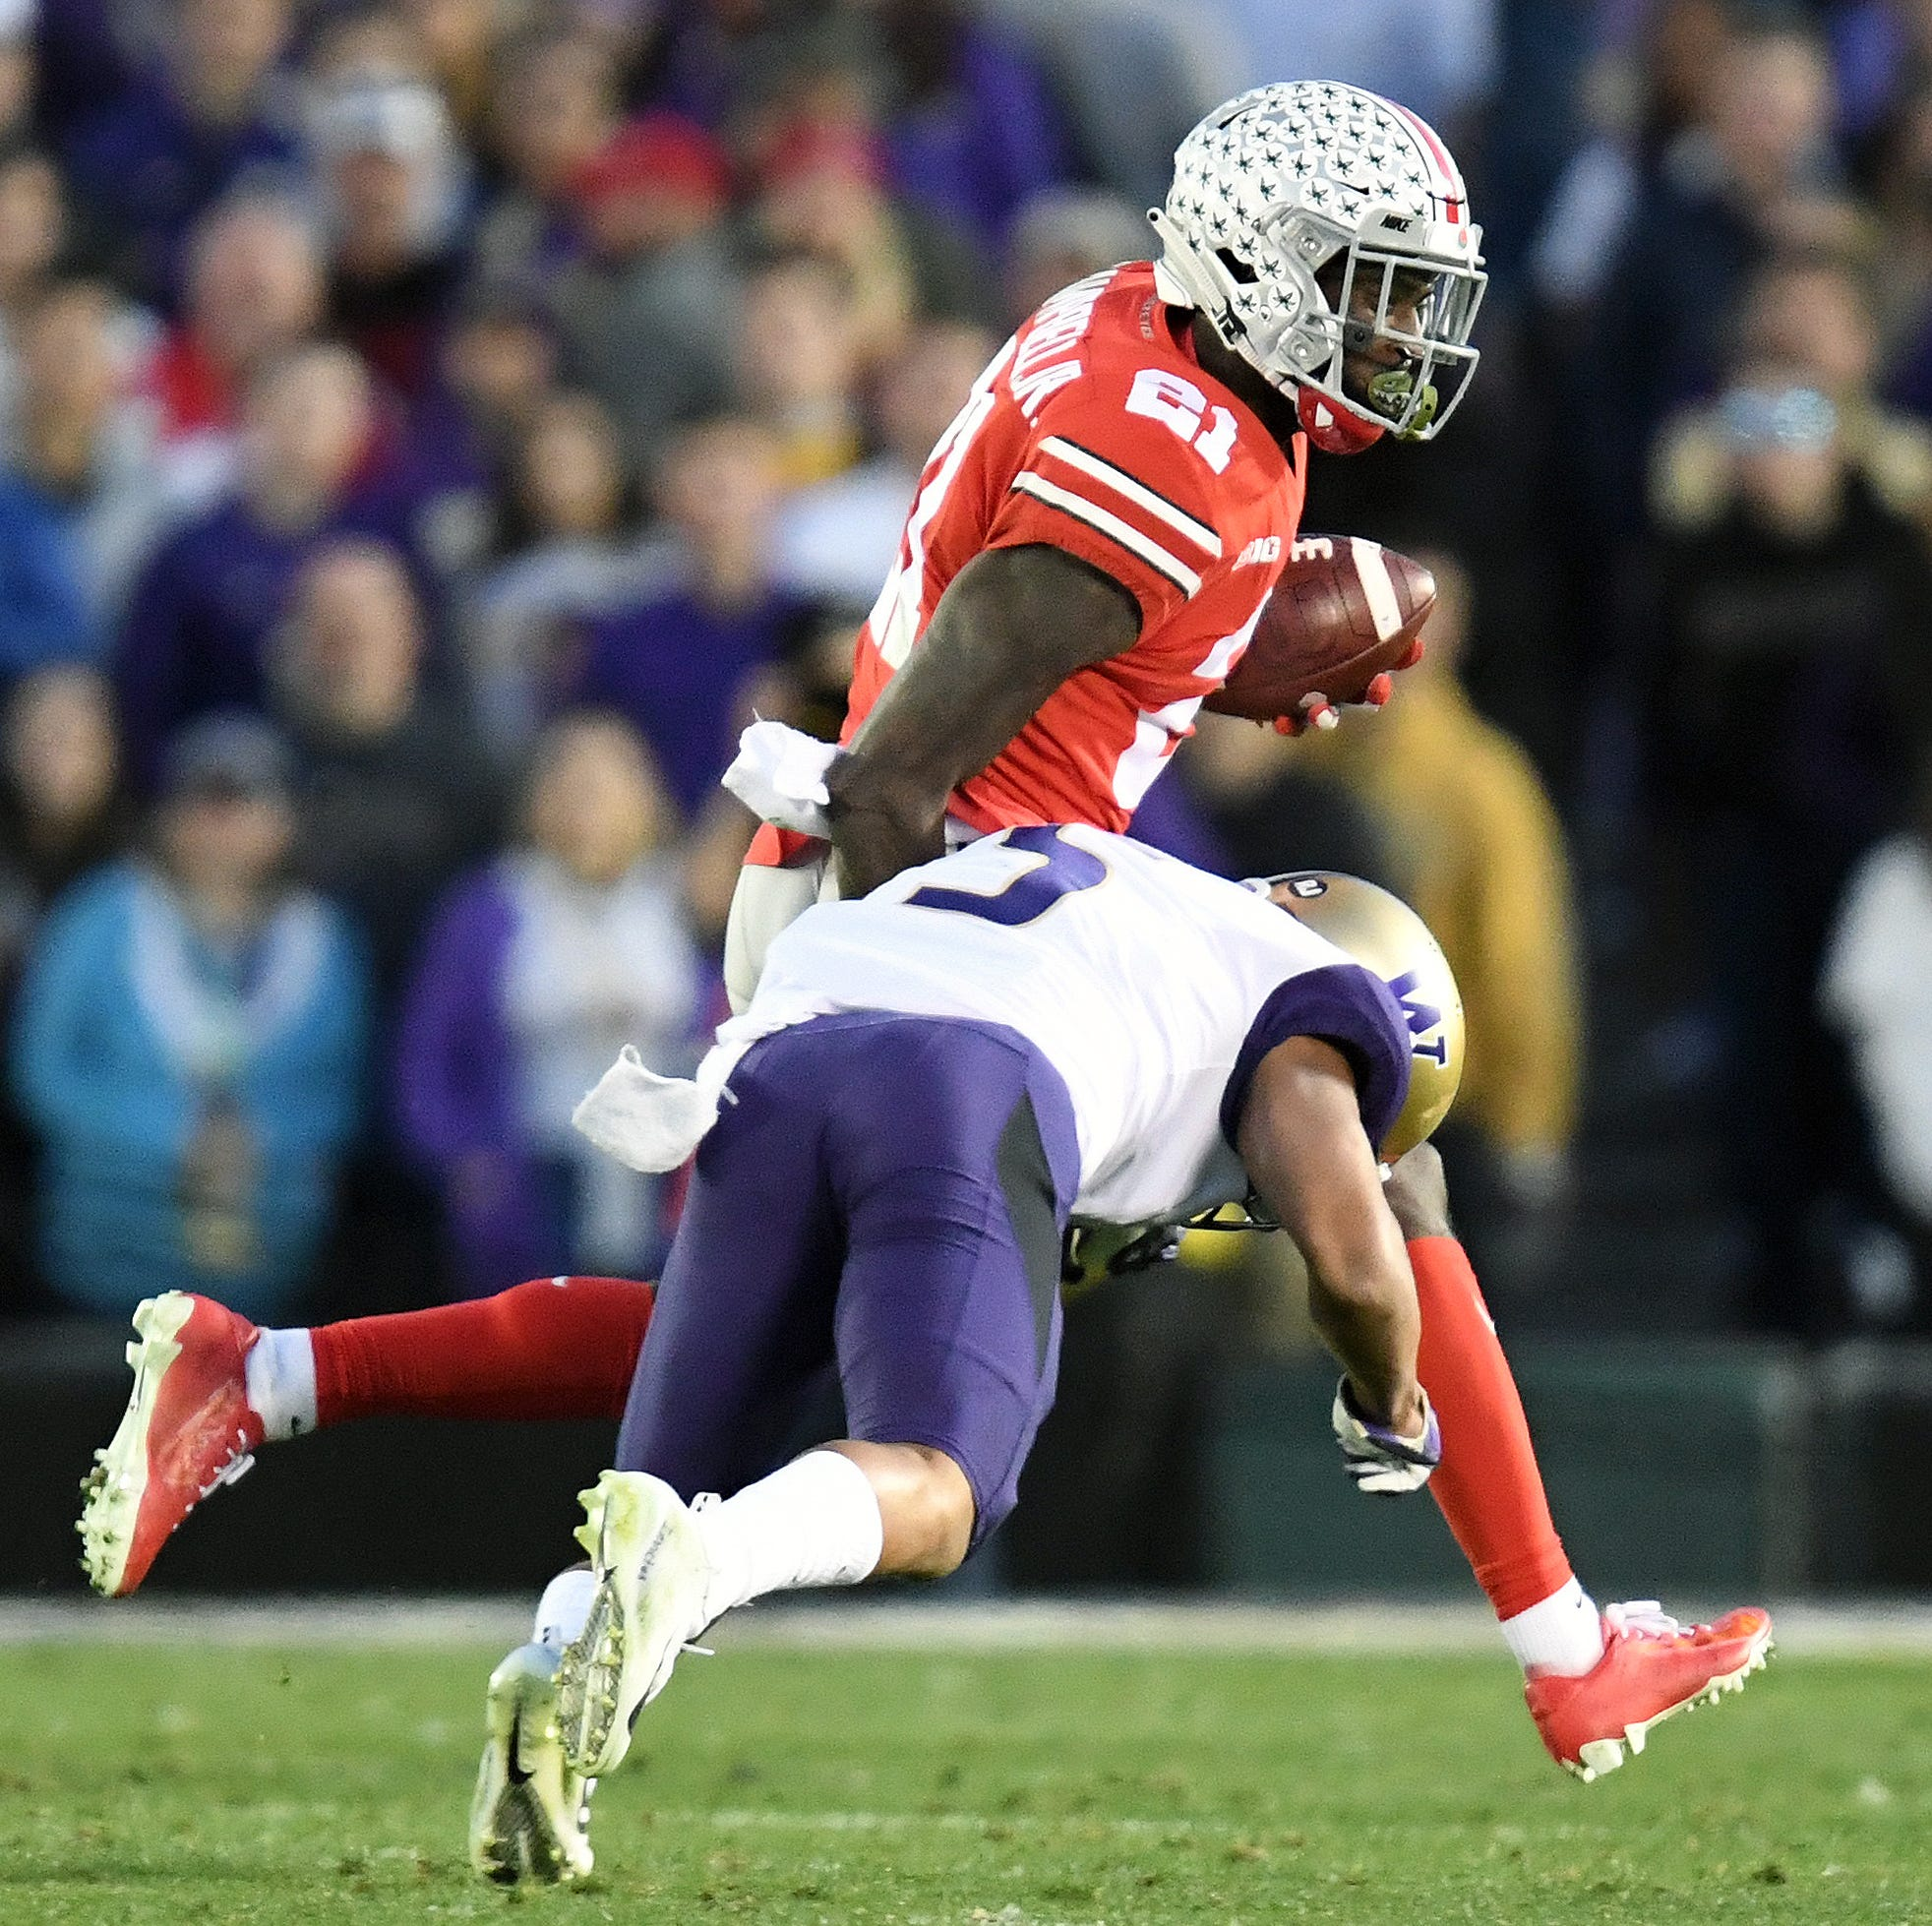 Colts grab versatile, speedy Ohio State receiver Parris Campbell with third second-rounder